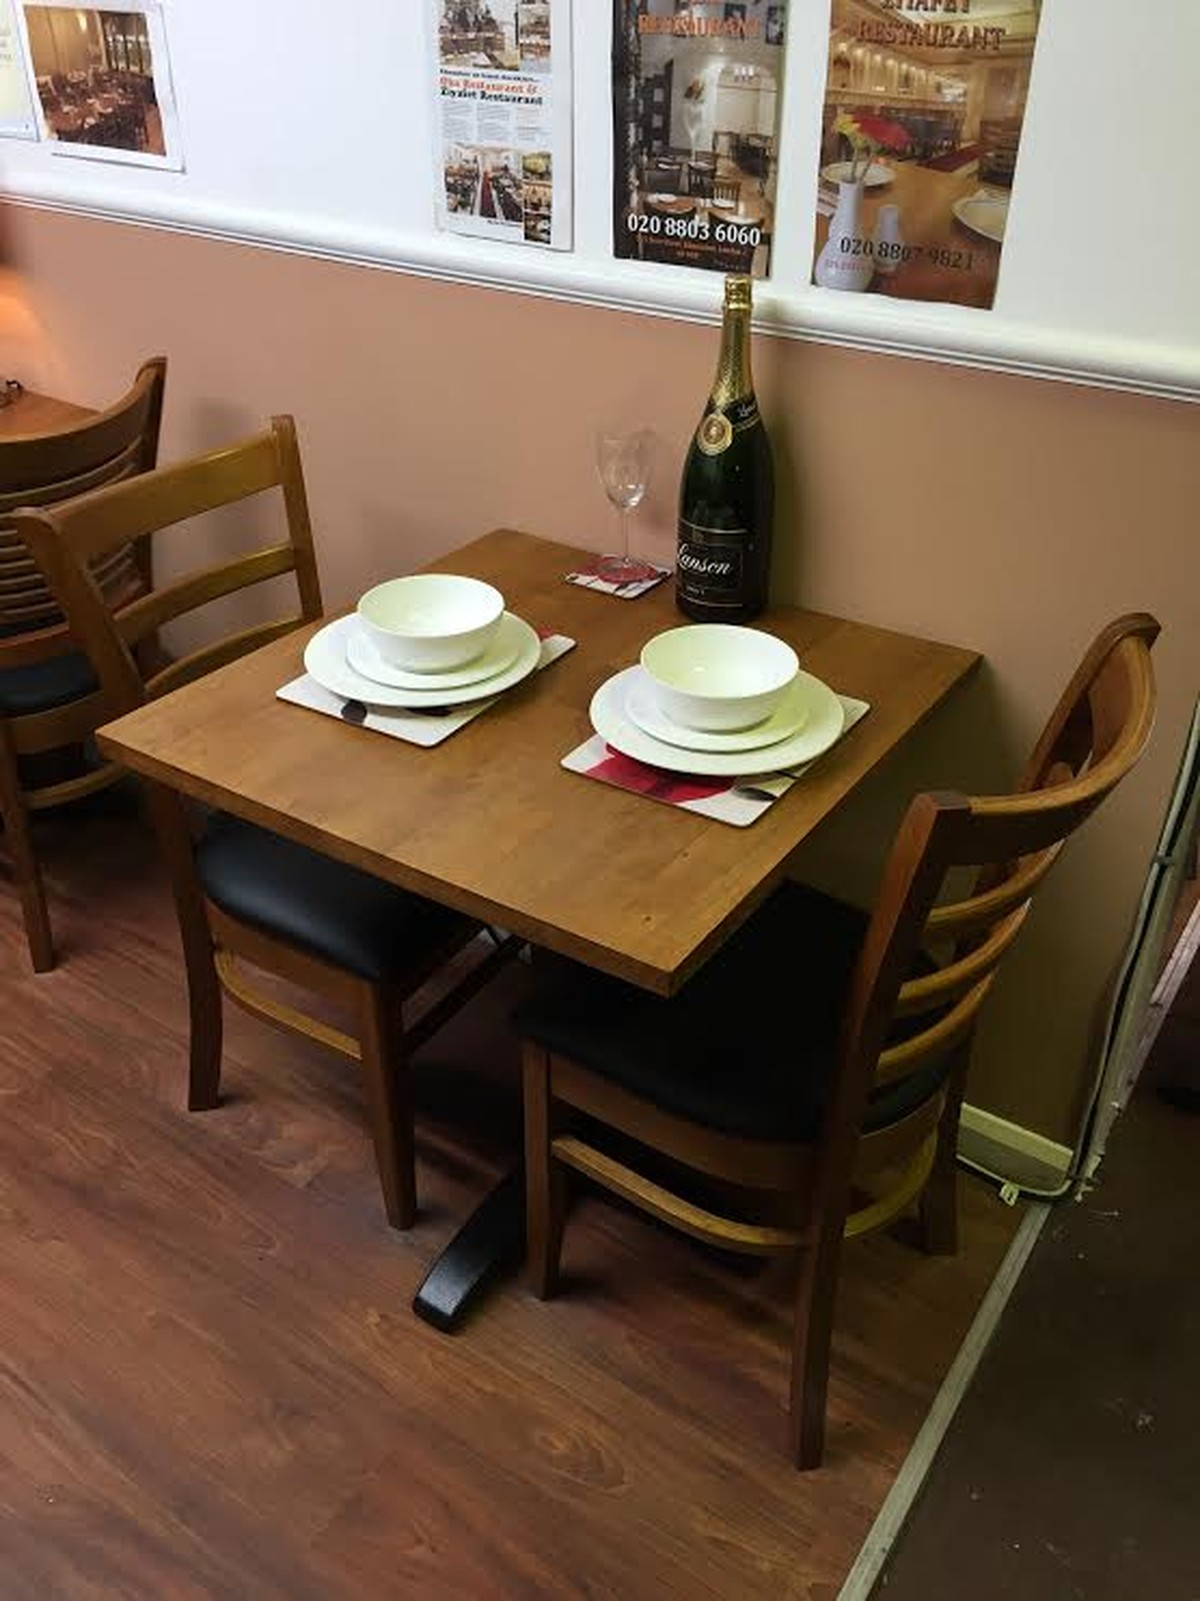 Secondhand generators global tables and chairs london for Black table and chairs for sale